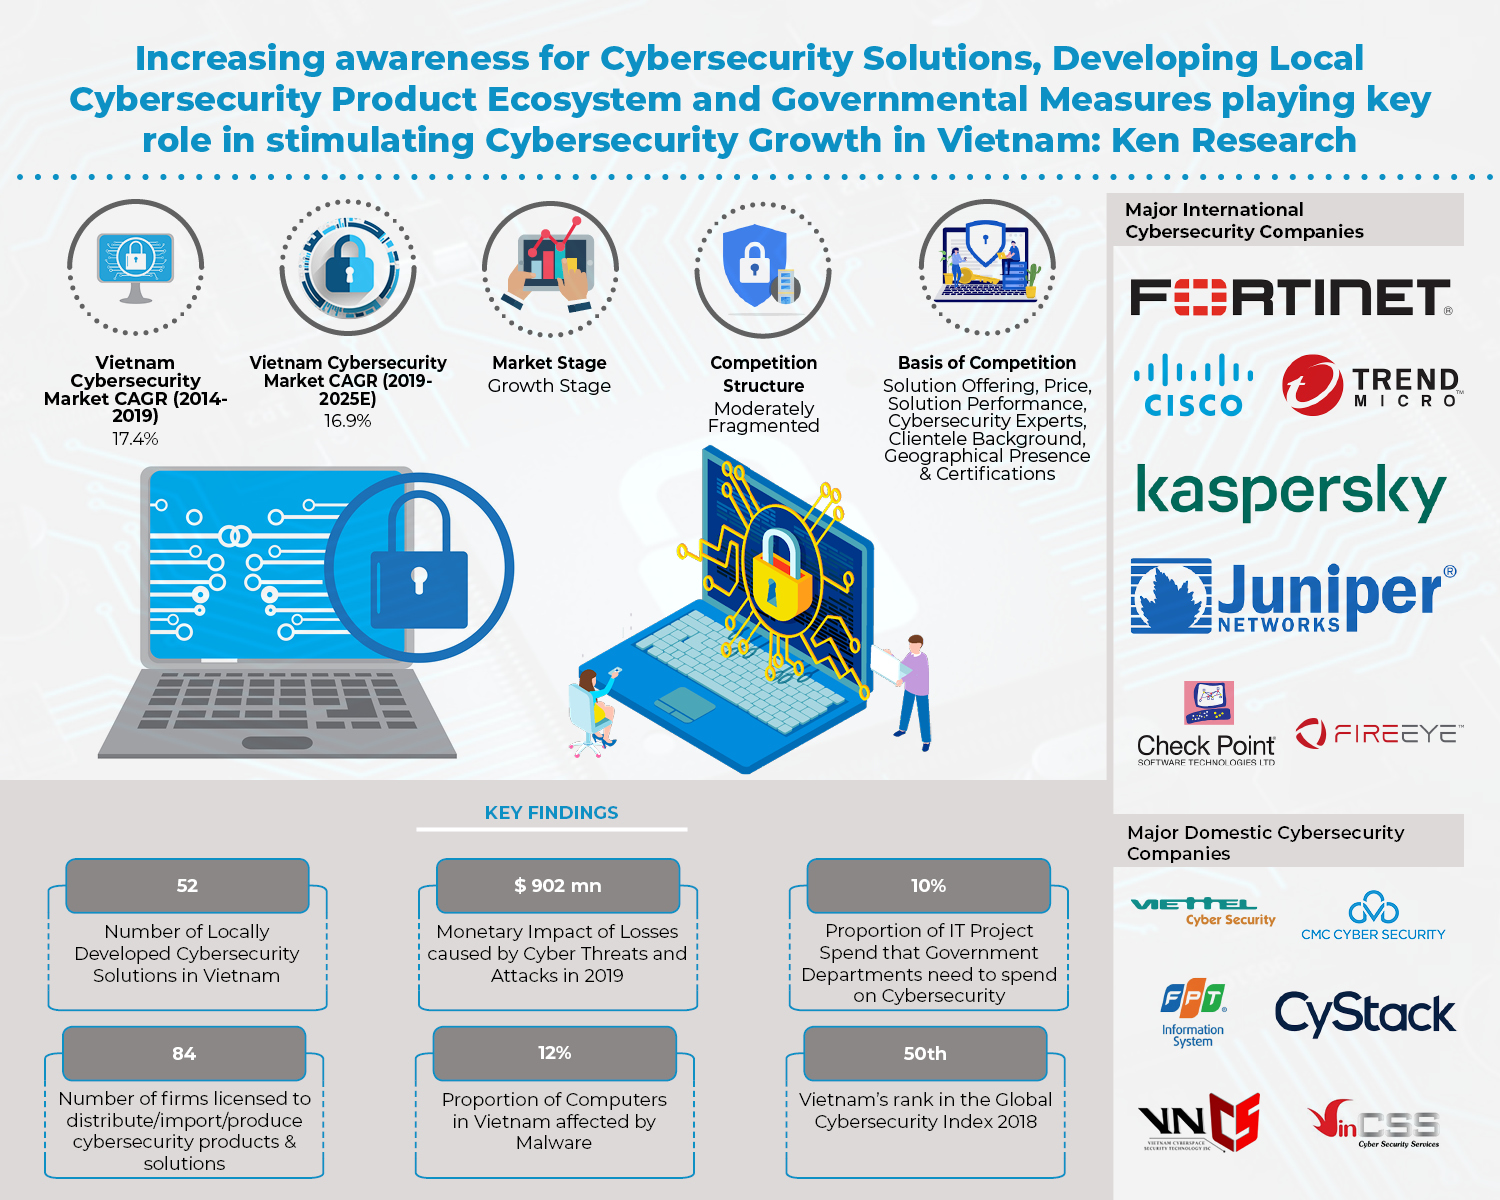 Evolving Cyber Threat Ecosystem and Increased Focus on Cybersecurity by SMEs will lead to growth in Information Security Ecosystem in Vietnam: Ken Research